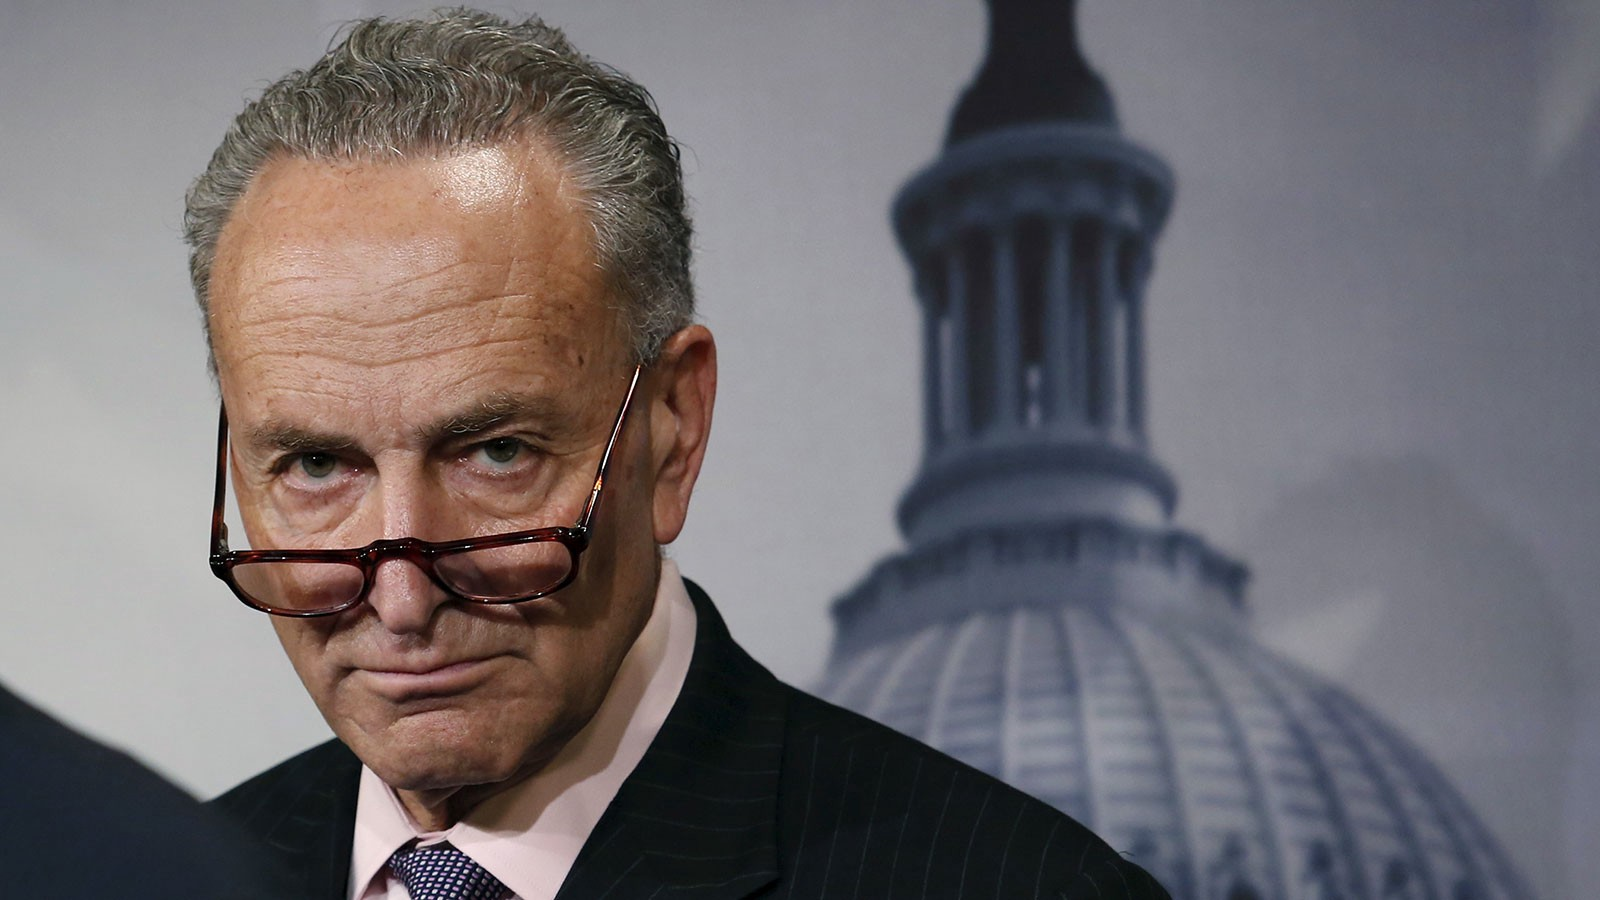 Chuck Schumer S Net Worth Know His Net Worth Career Personal Life Wiki Access information to assist your salary negotiations. know networth